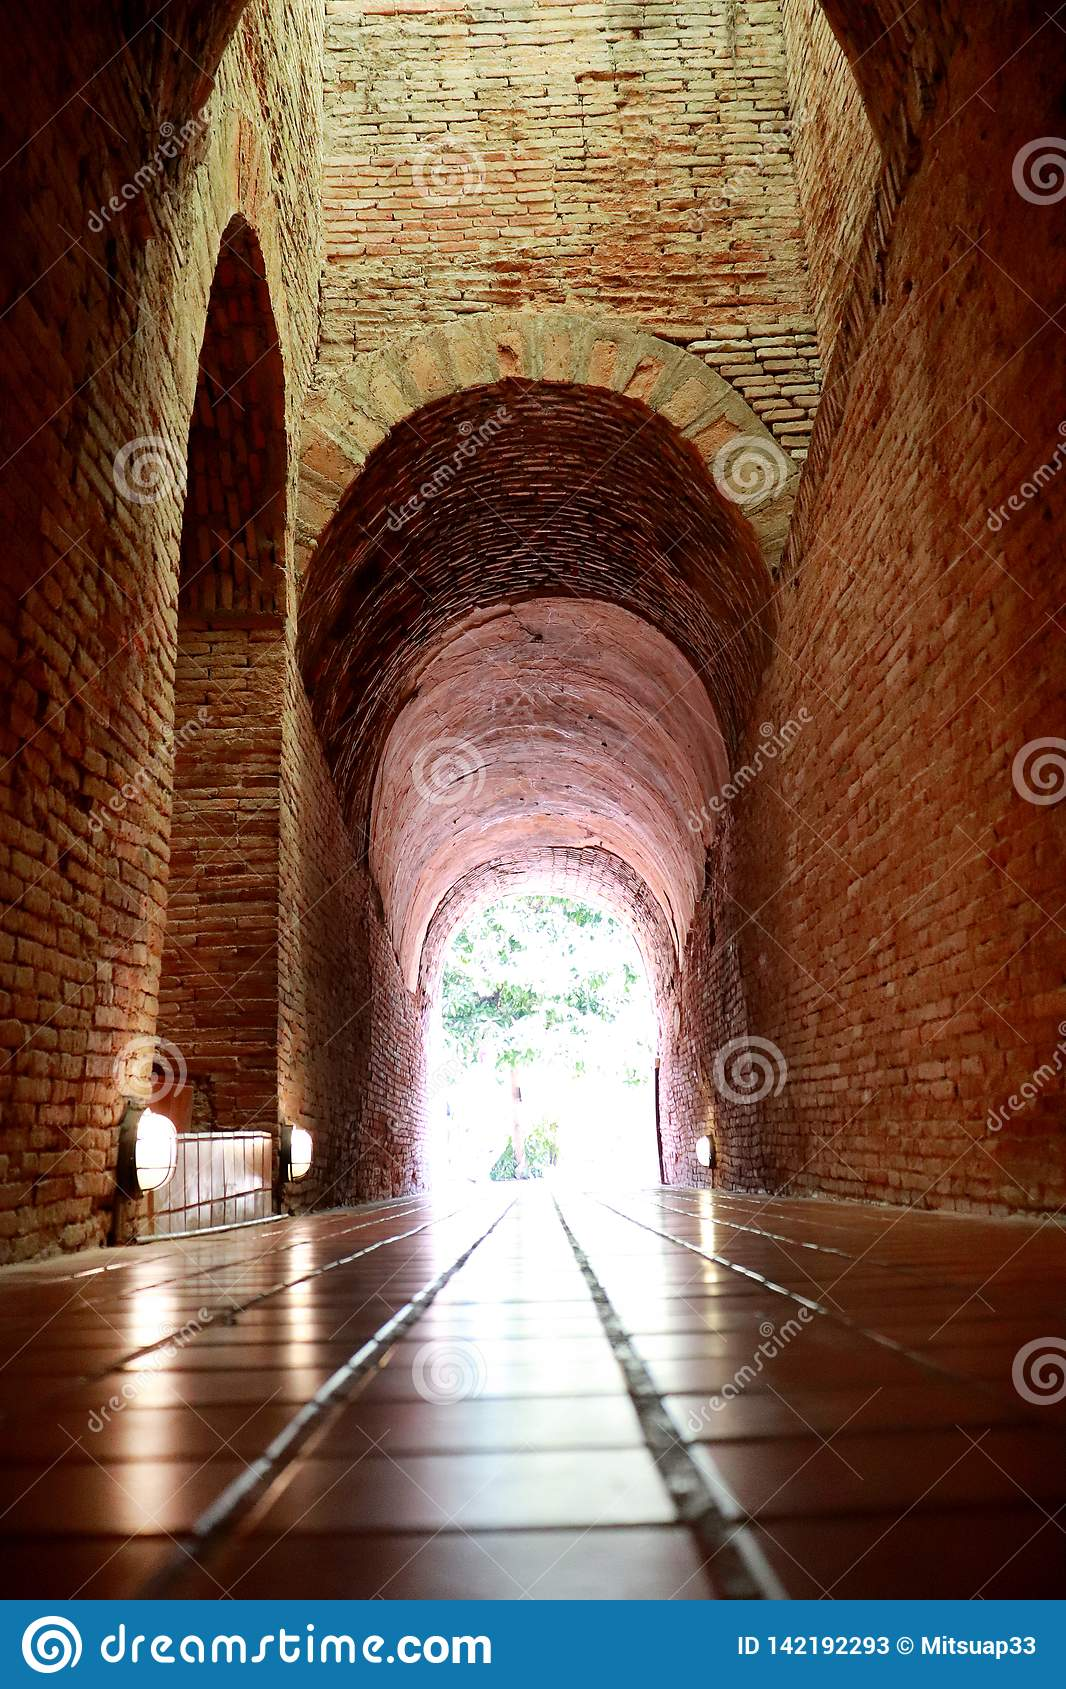 The old tunnel with a light in the end at Wat Umong Changmai Thailand